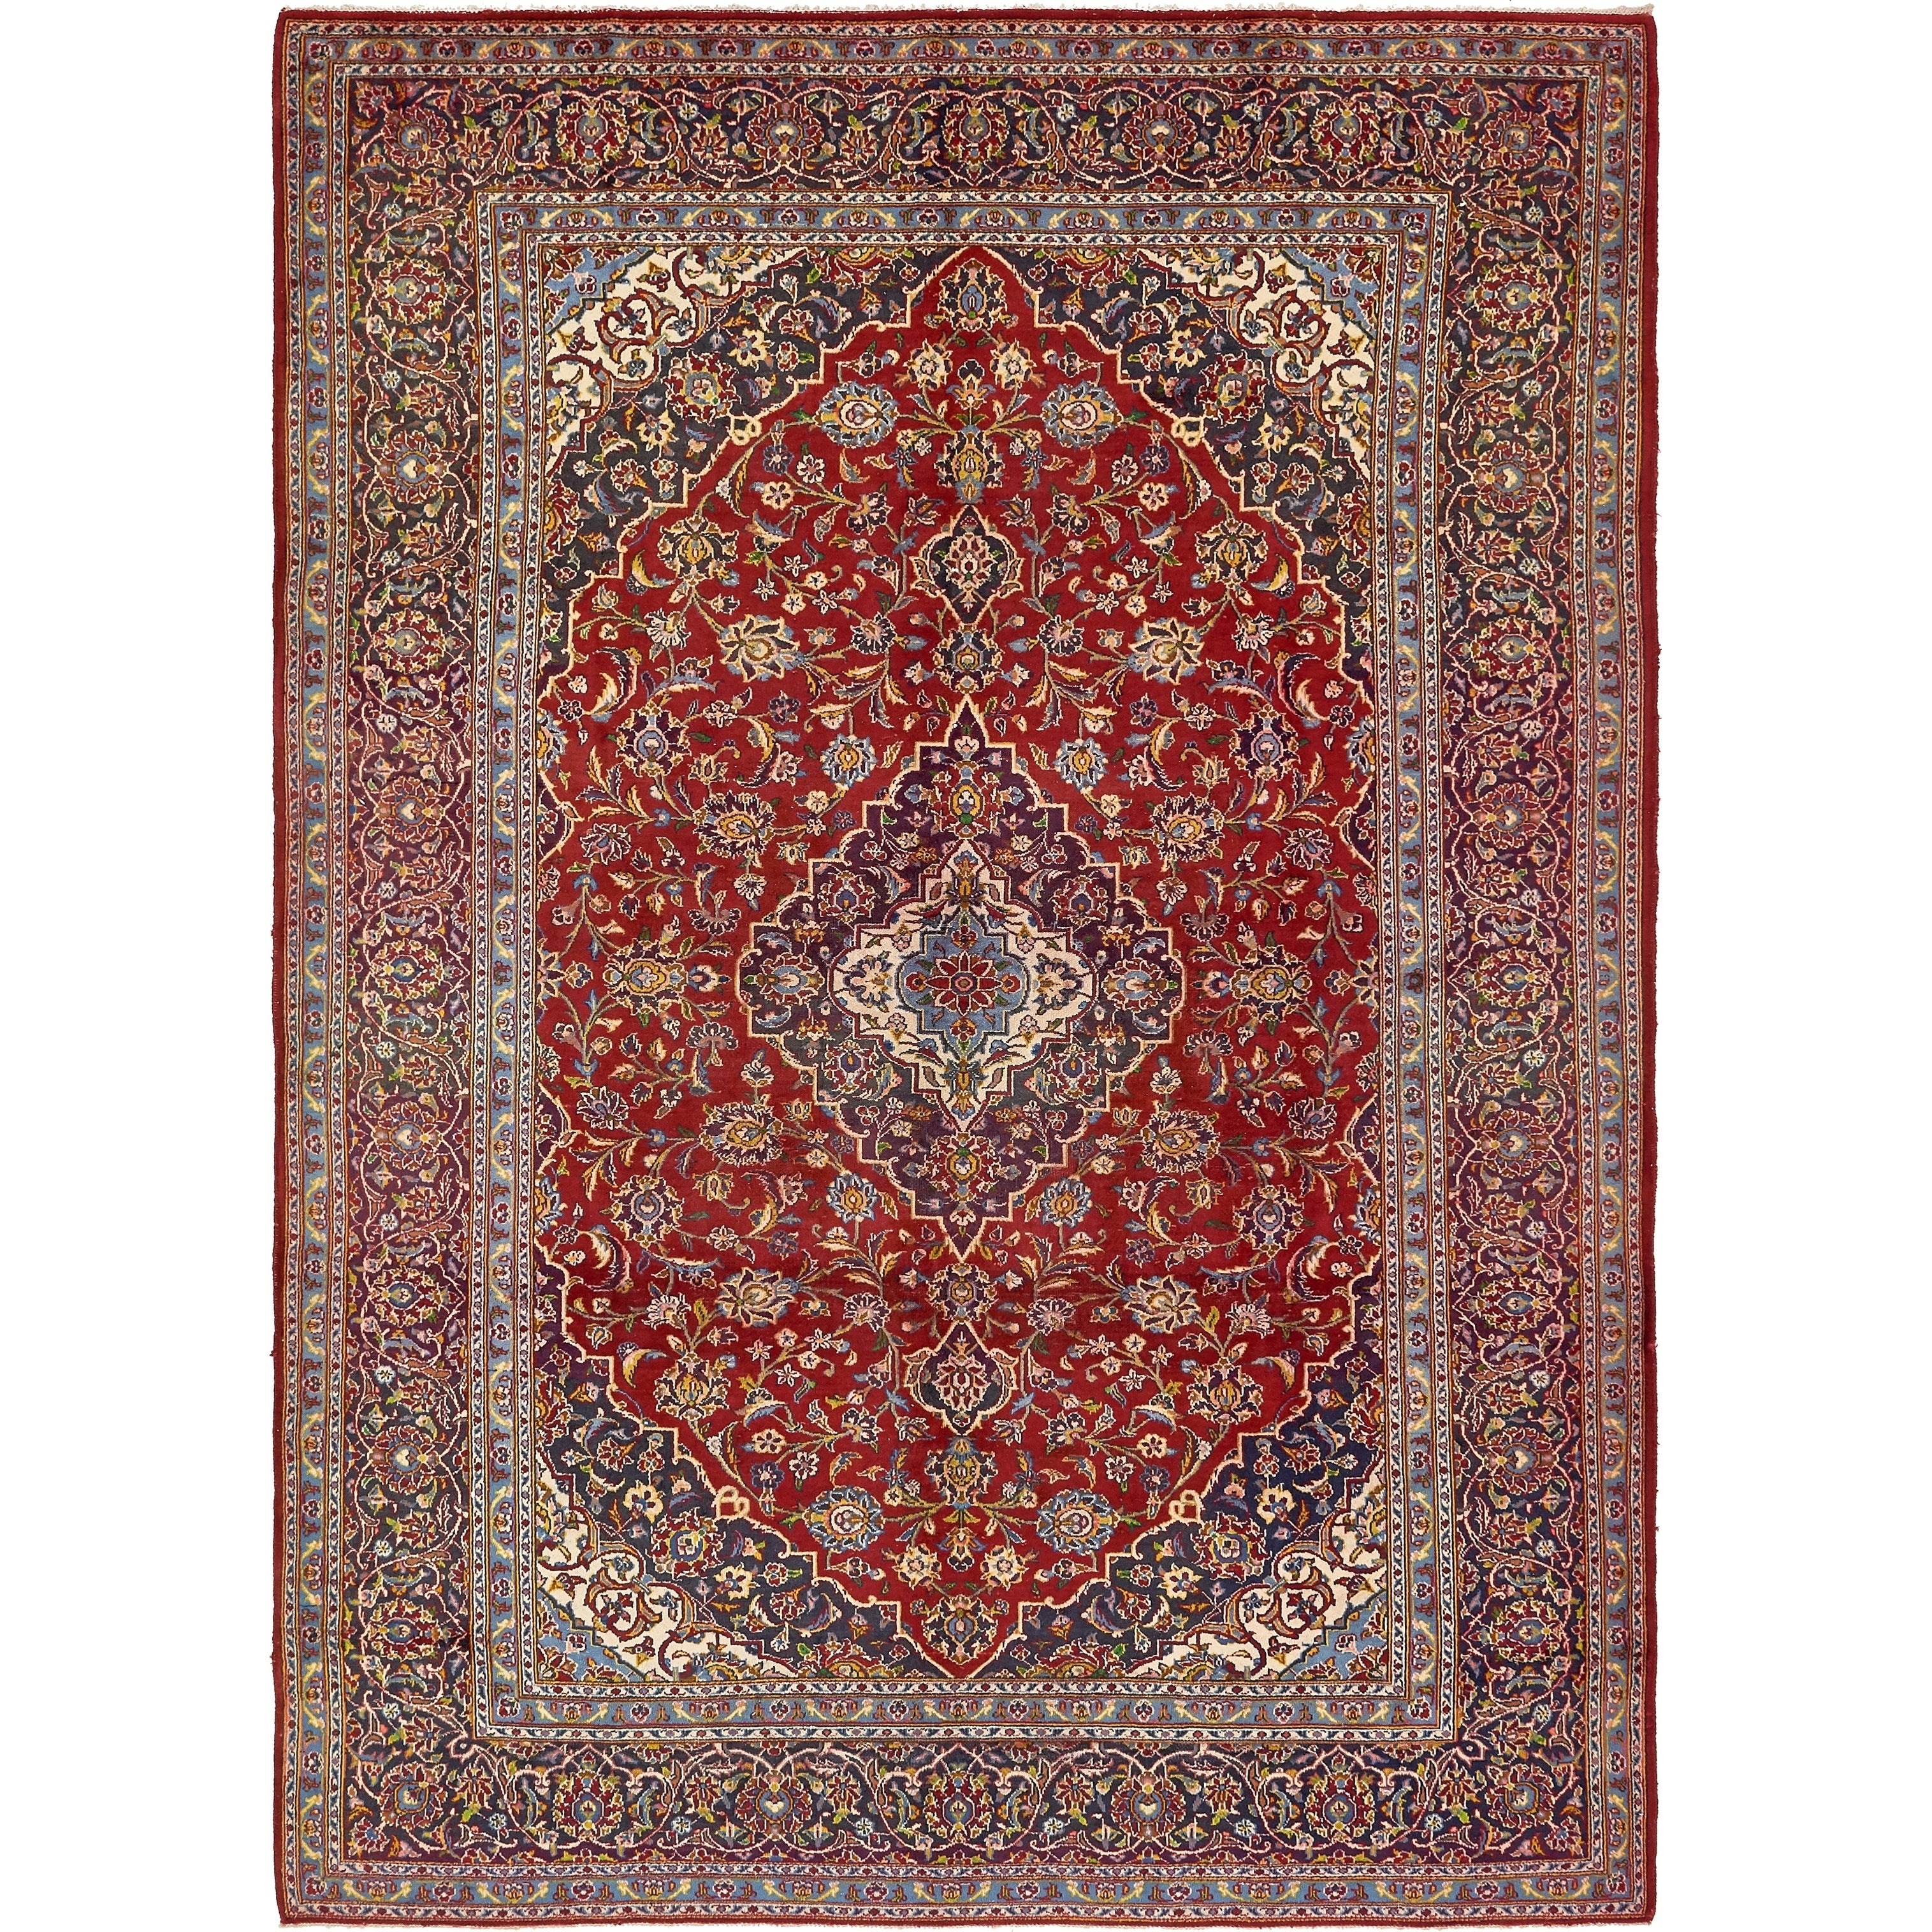 Hand Knotted Kashan Semi Antique Wool Area Rug - 8 4 x 11 6 (Red - 8 4 x 11 6)